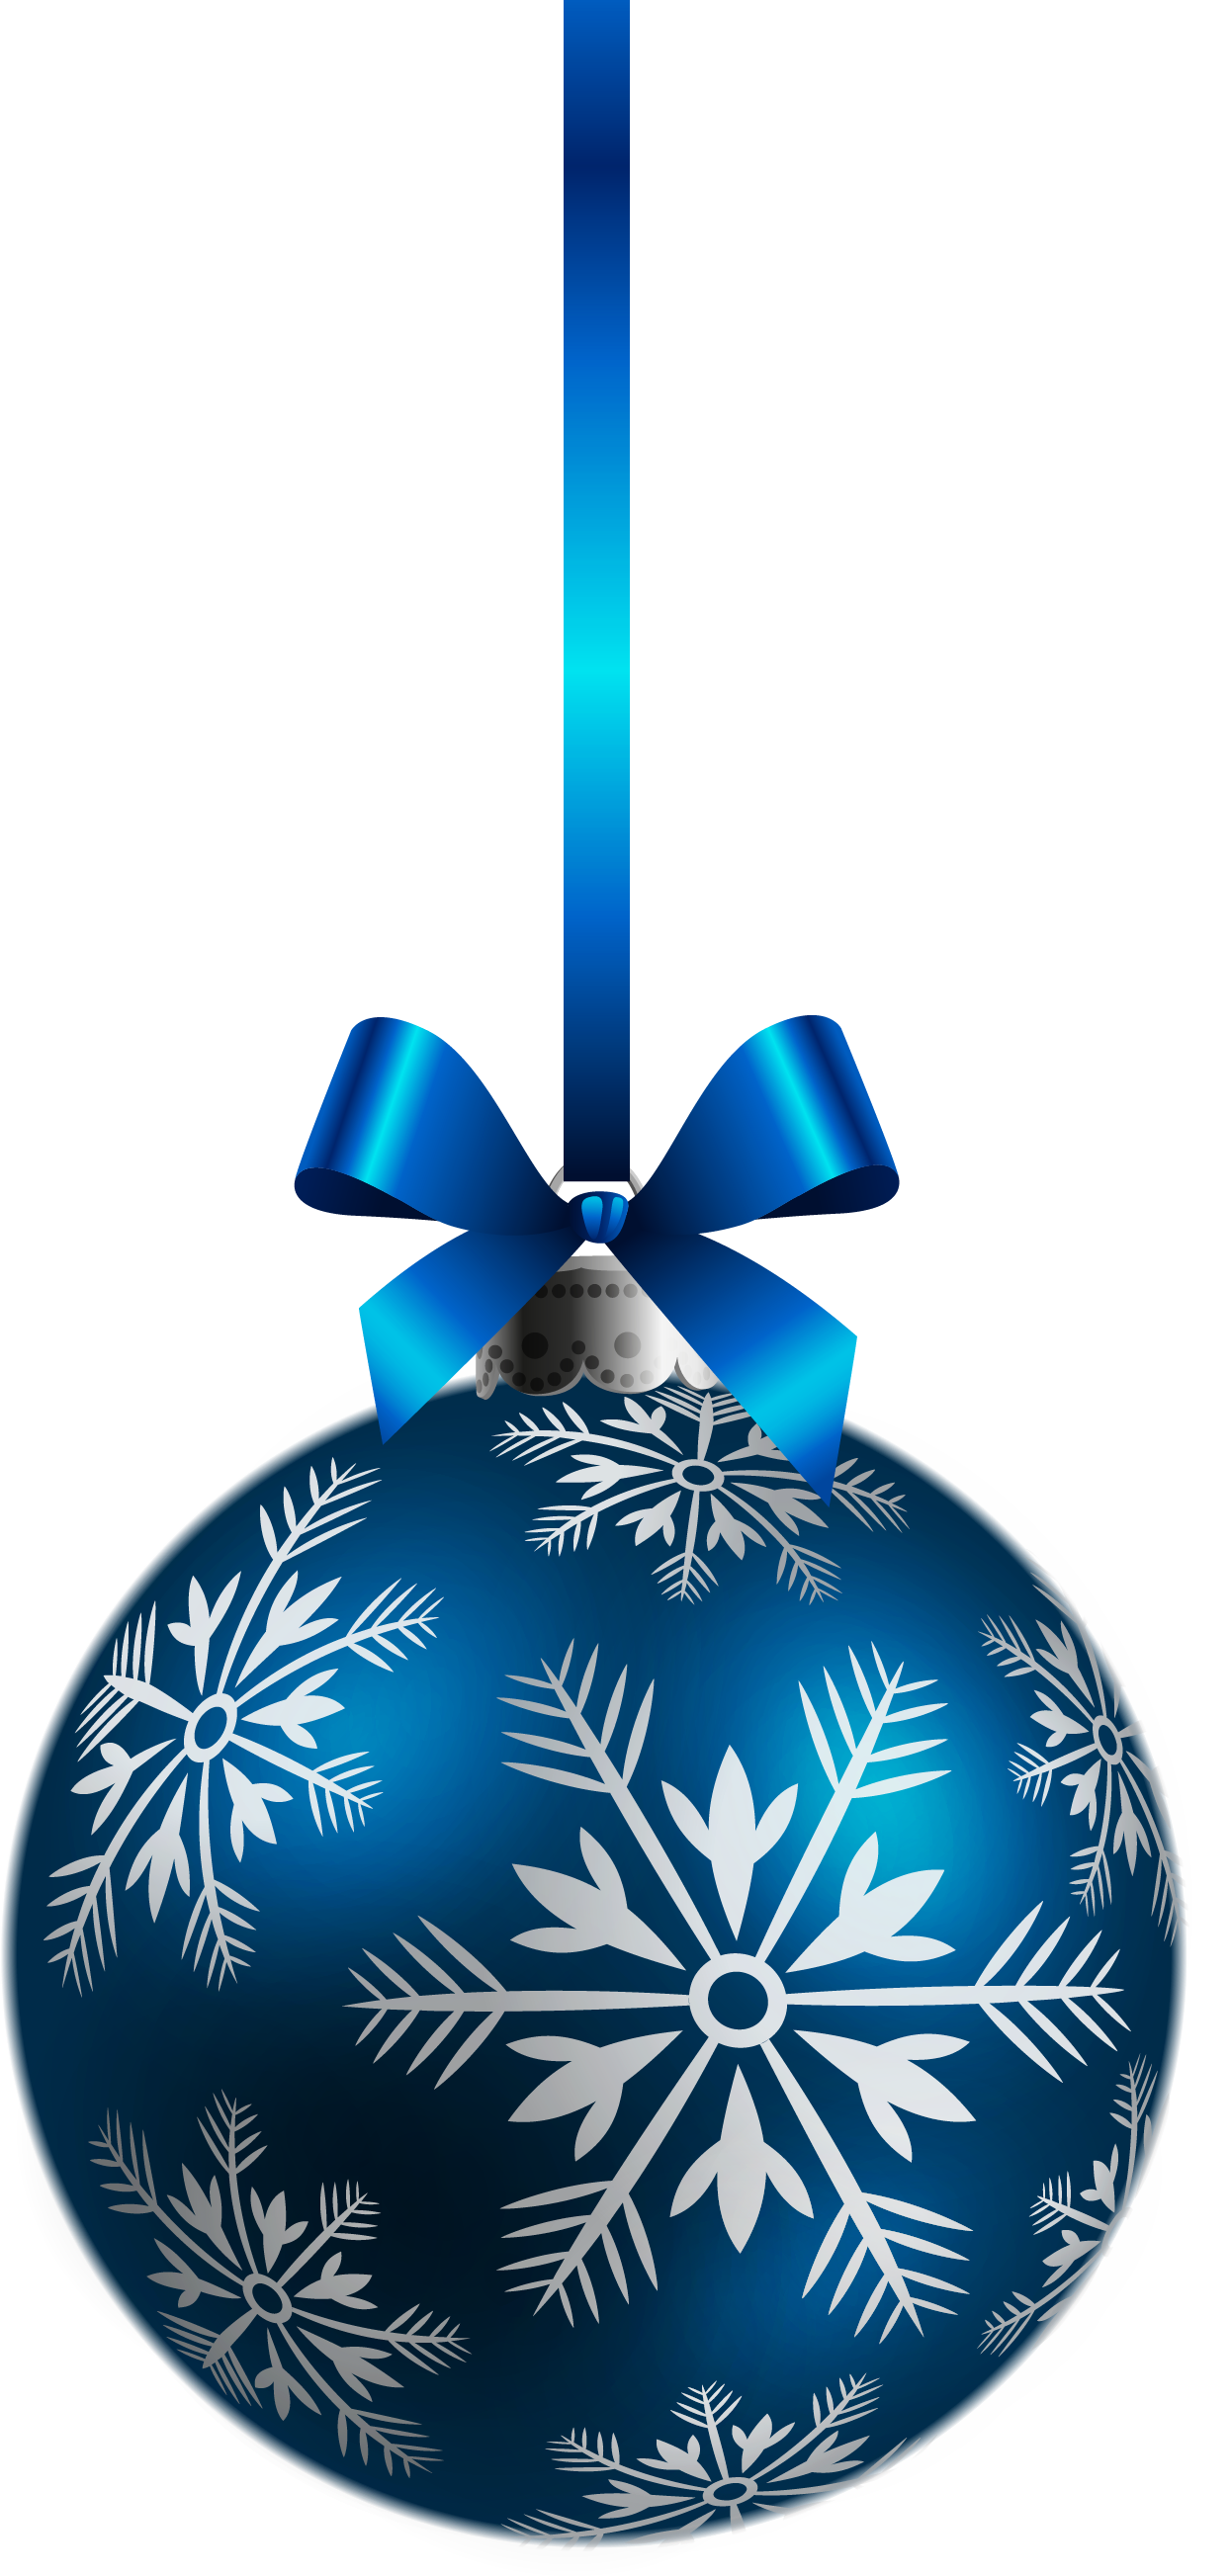 Png Christmas Ornament.Download Christmas Ornament Free Png Image Hq Png Image